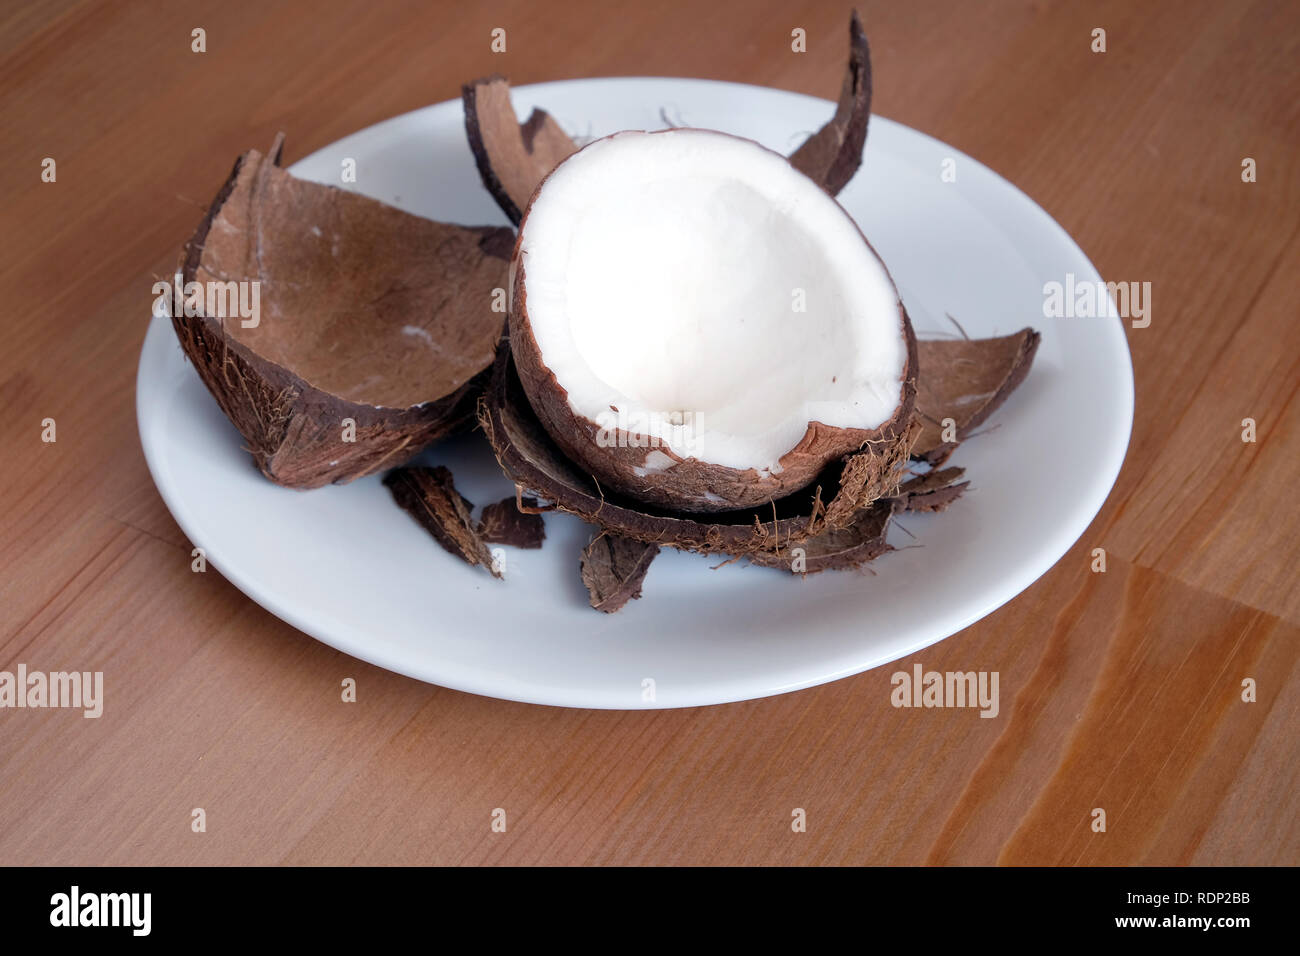 Still life with broken coconut shell ripe white flesh inside and debris on round white plate on brown wooden table horizontal close up photo - Stock Image